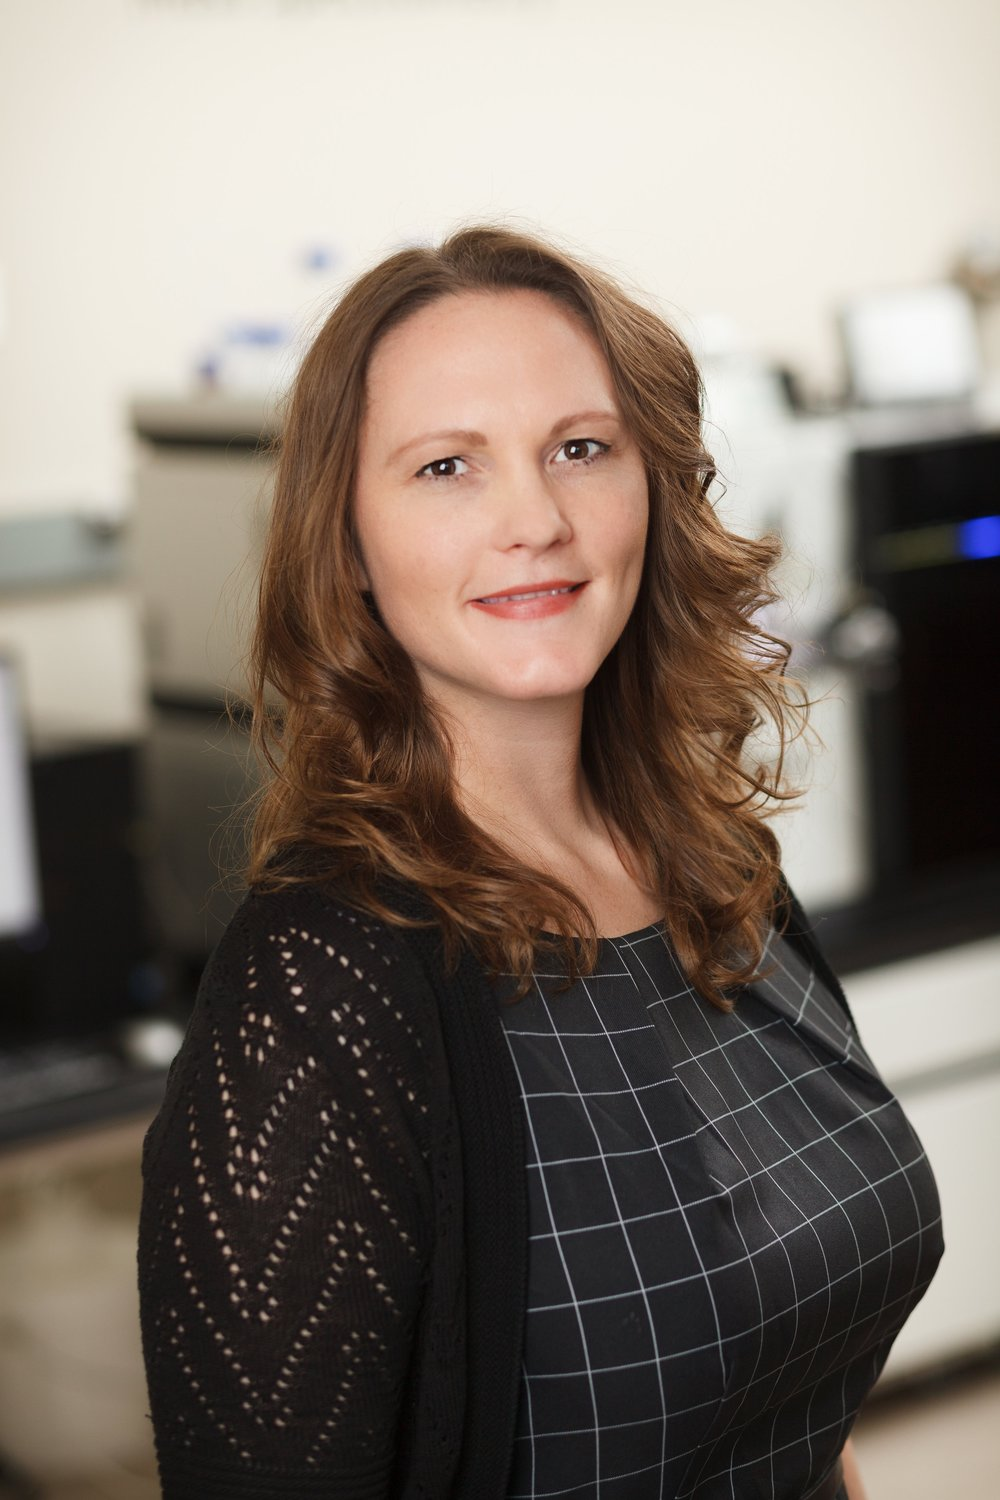 Rebekah L. Gundry, PhD - Associate ProfessorDirector